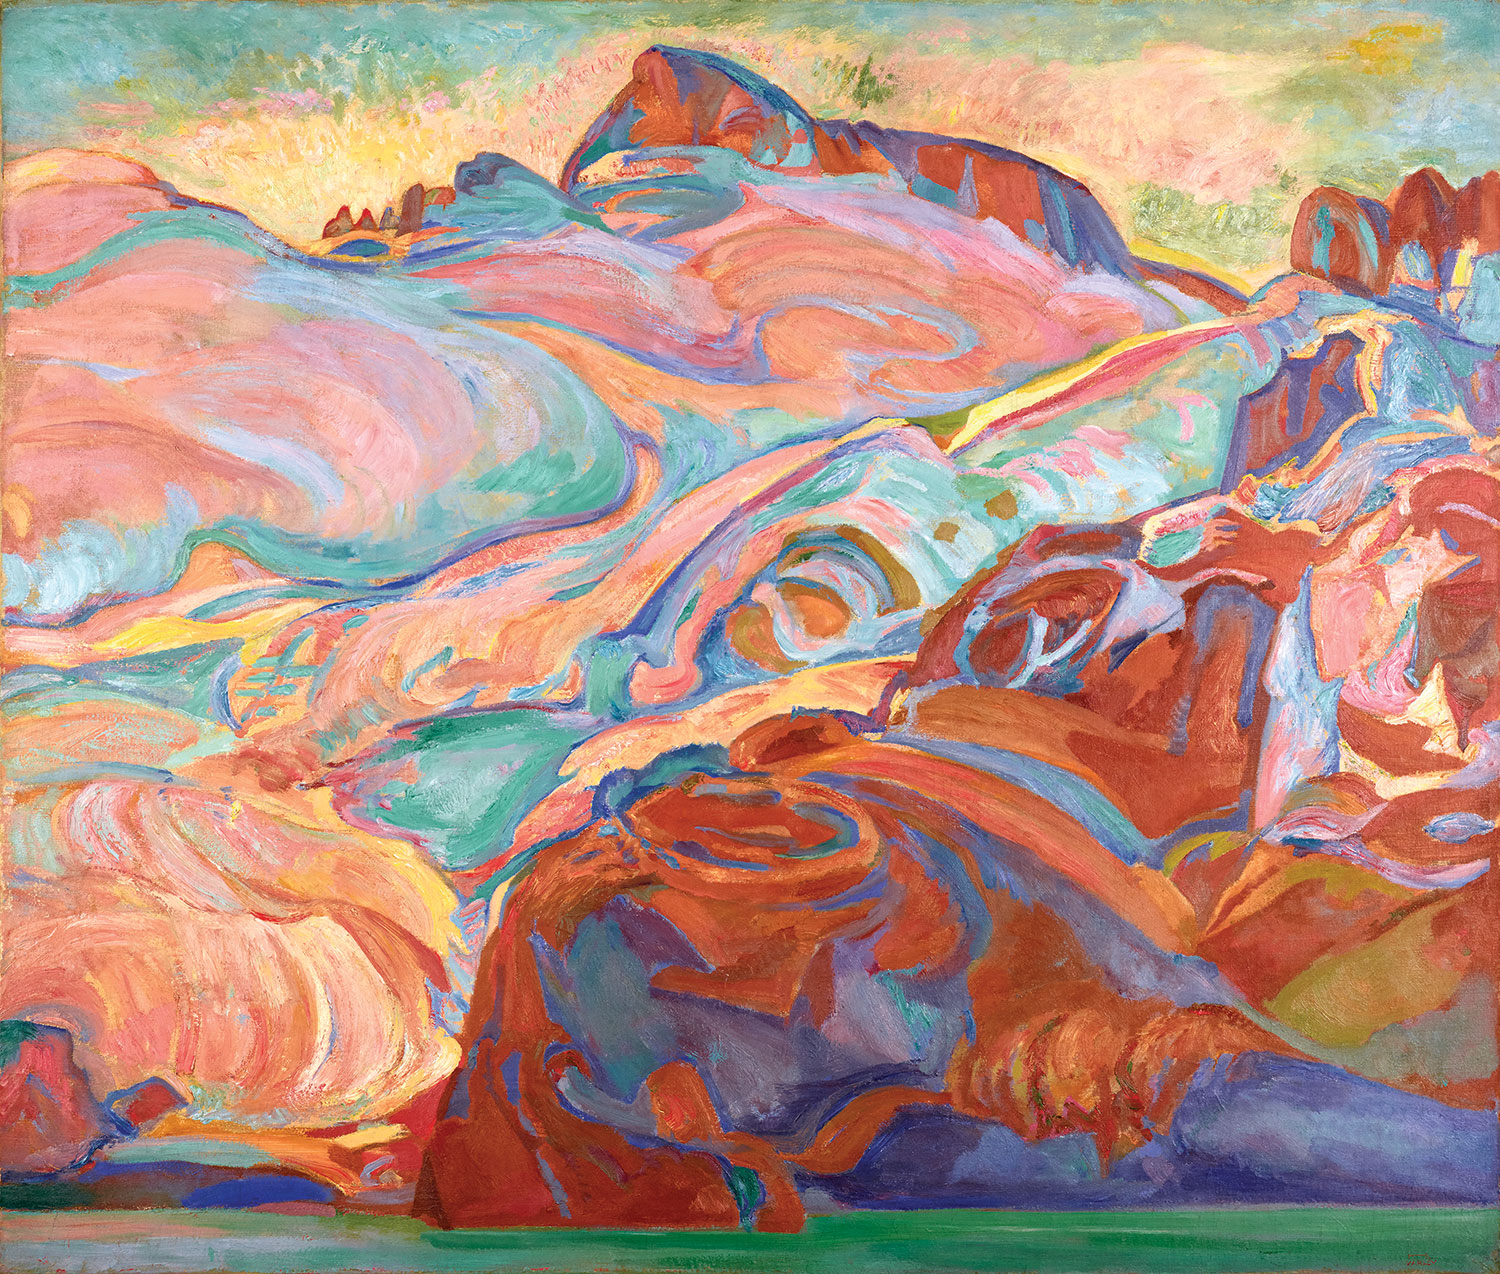 F.H. Varley, Early Morning, Sphinx Mountain, c. 1928